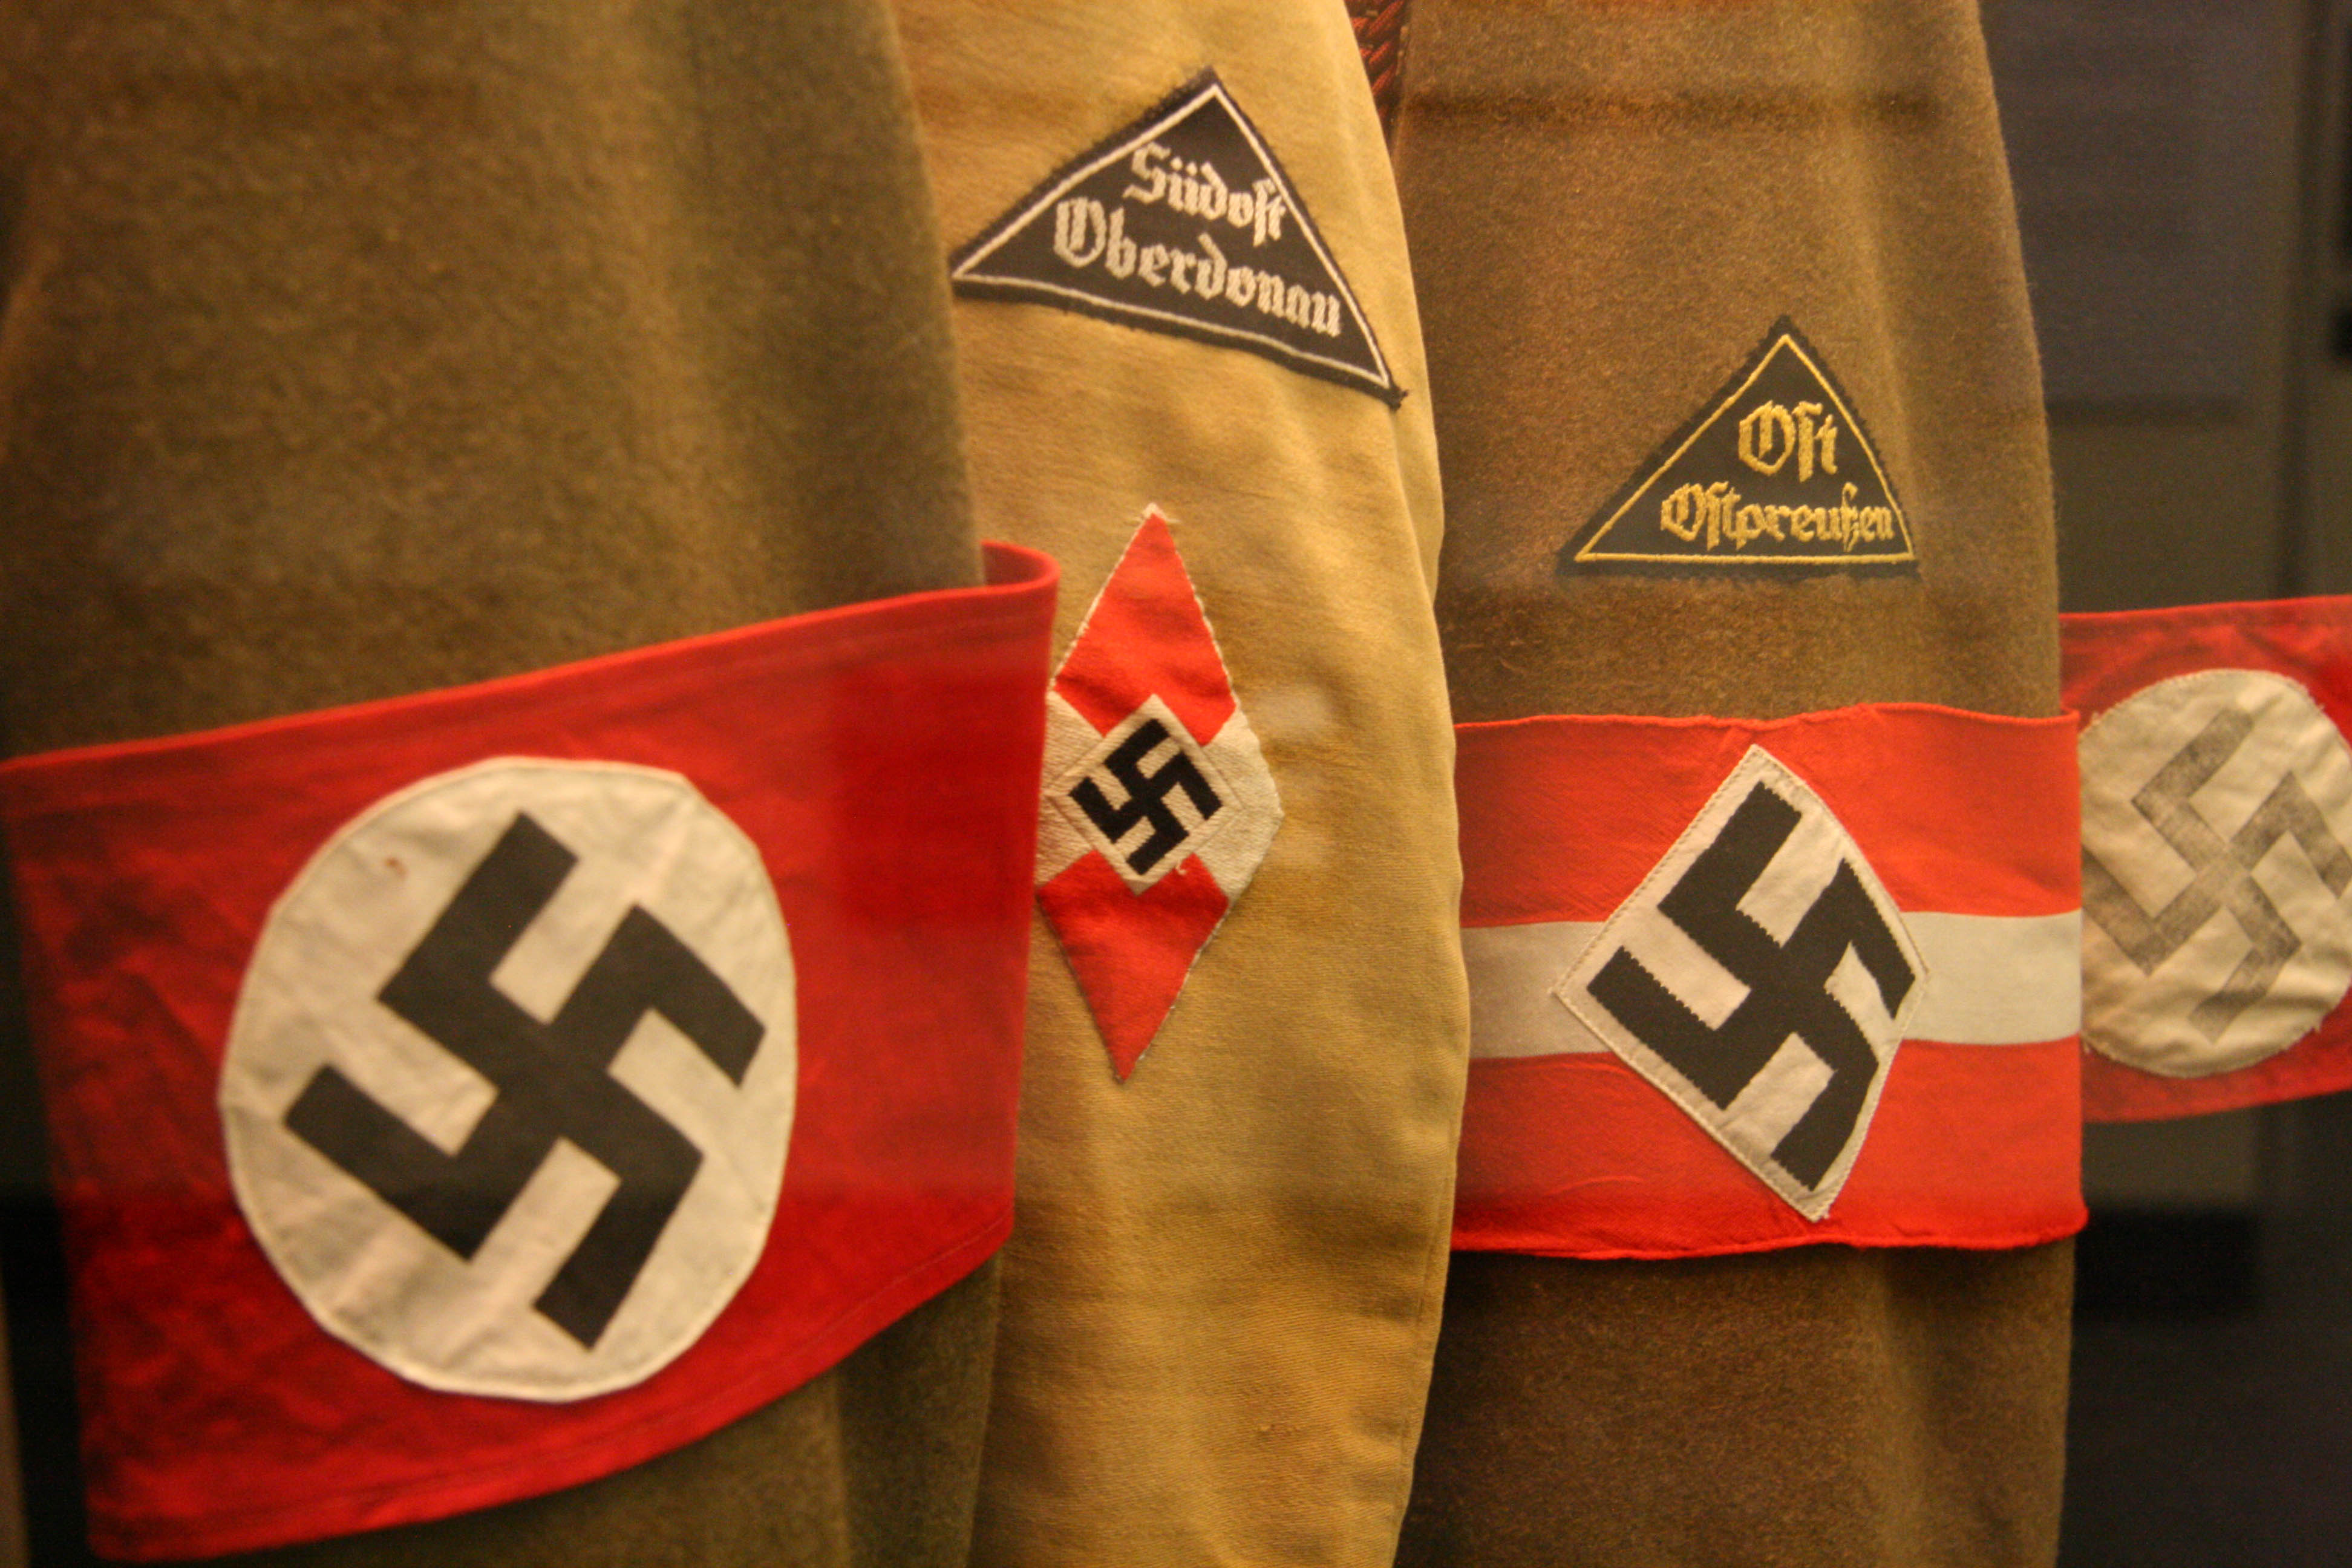 Uniforms with Swastika armbands on display at the Deutsches Historisches Museum (German Historical Museum) in Berlin